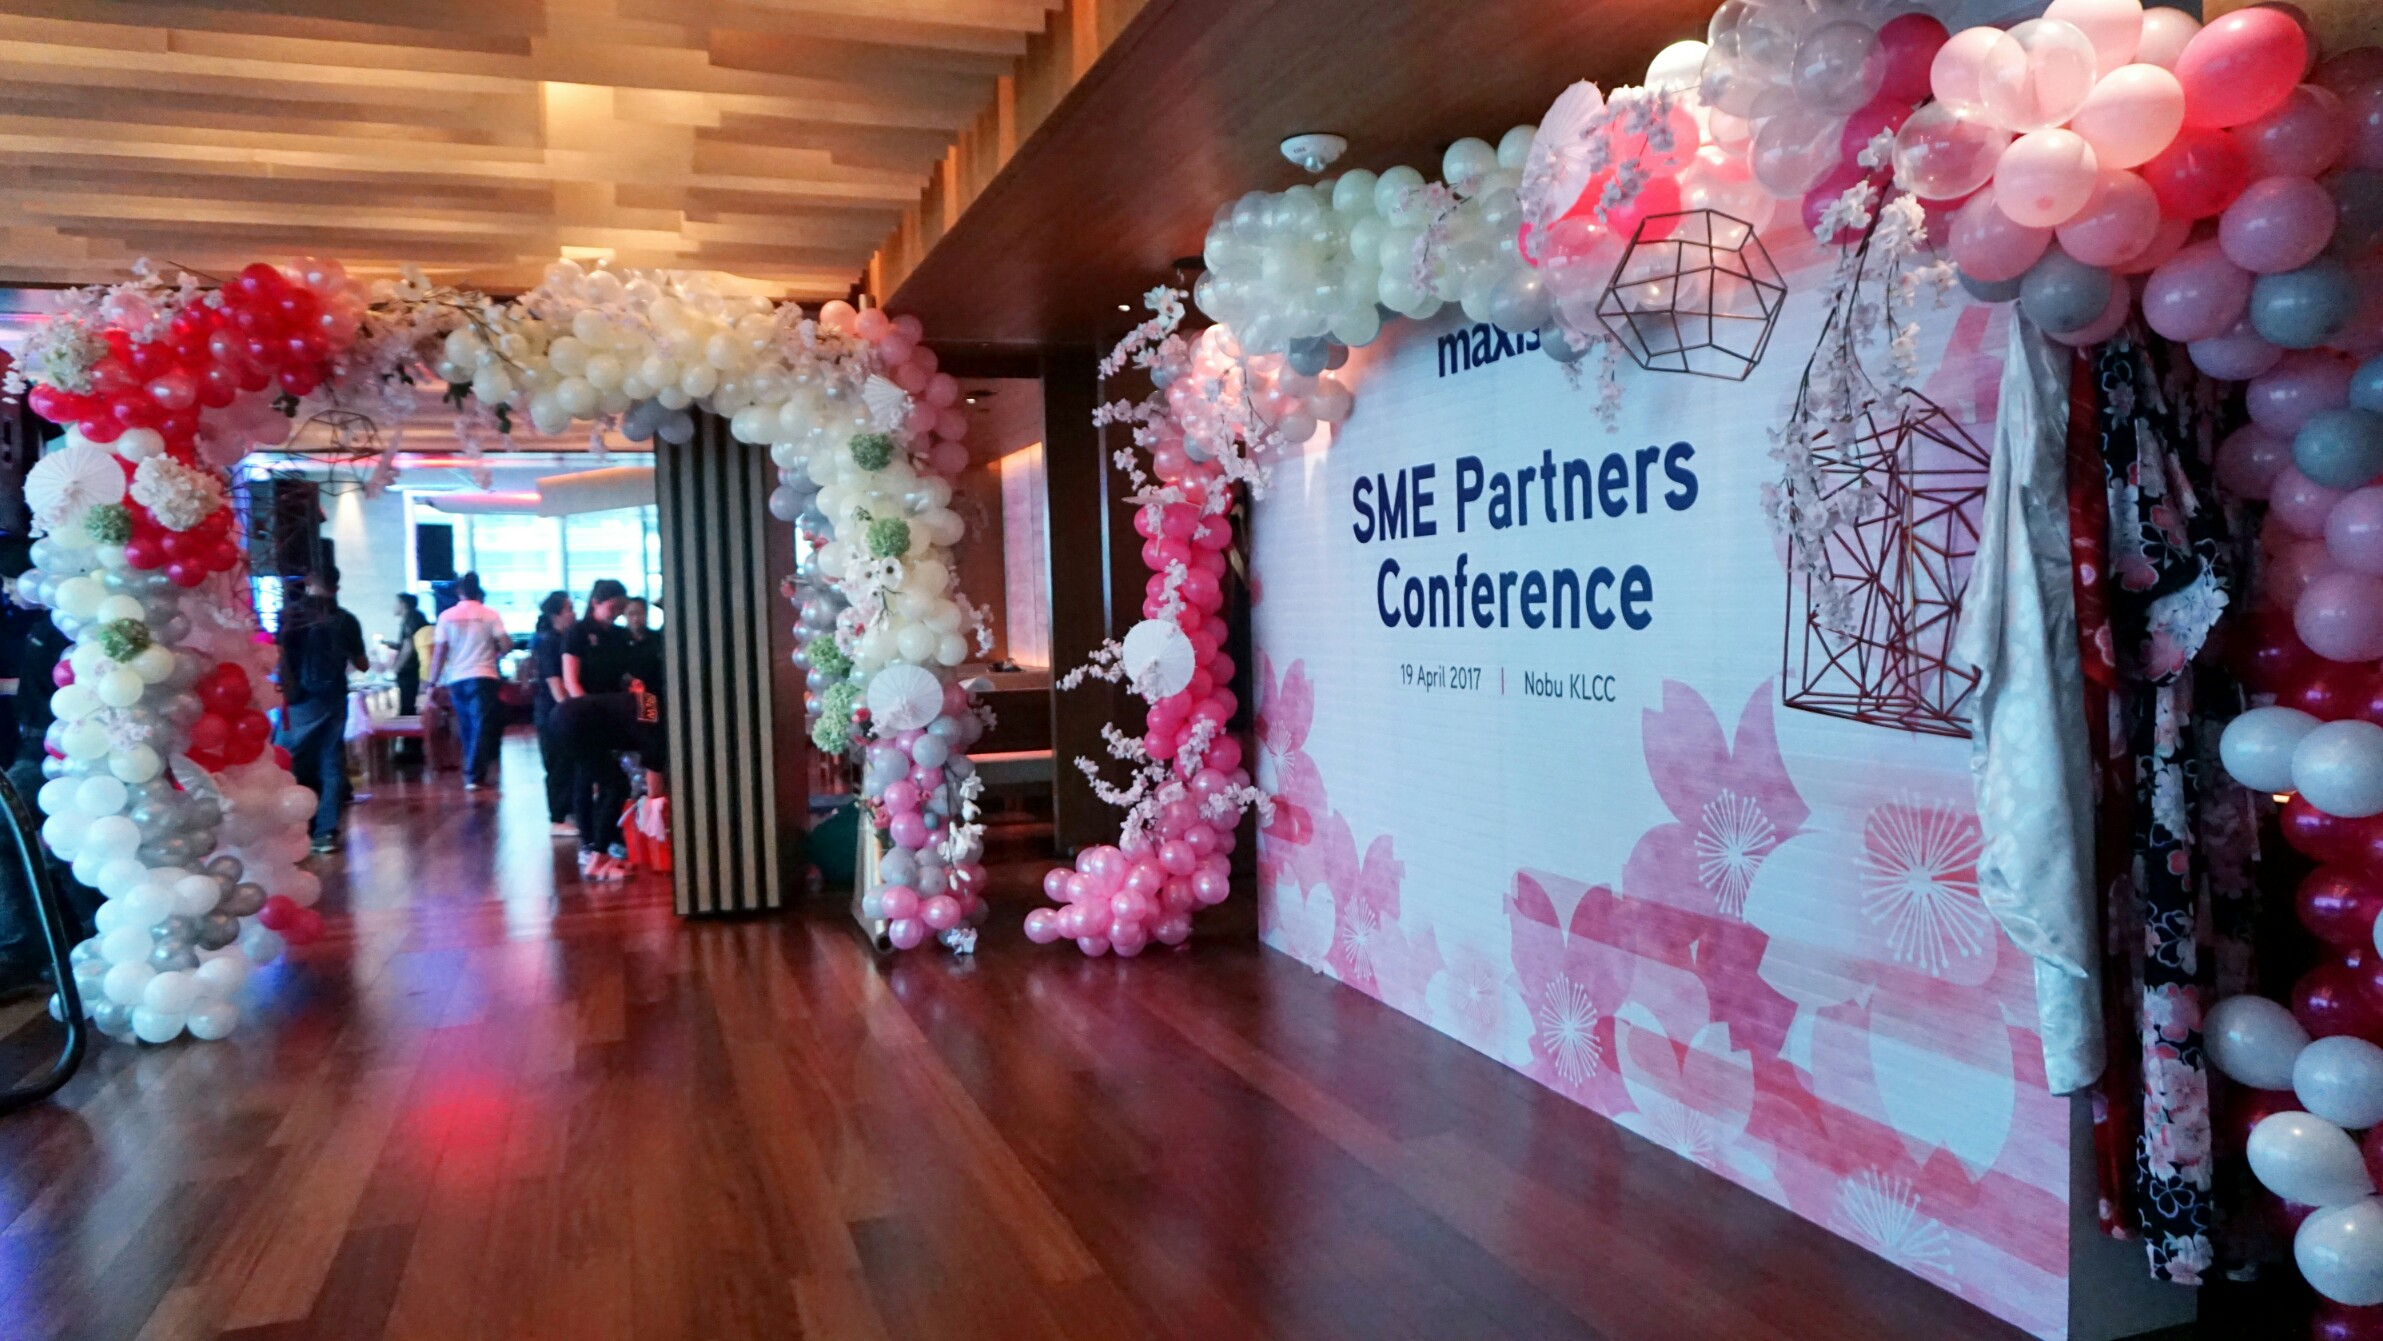 Maxis SME Partners Conference